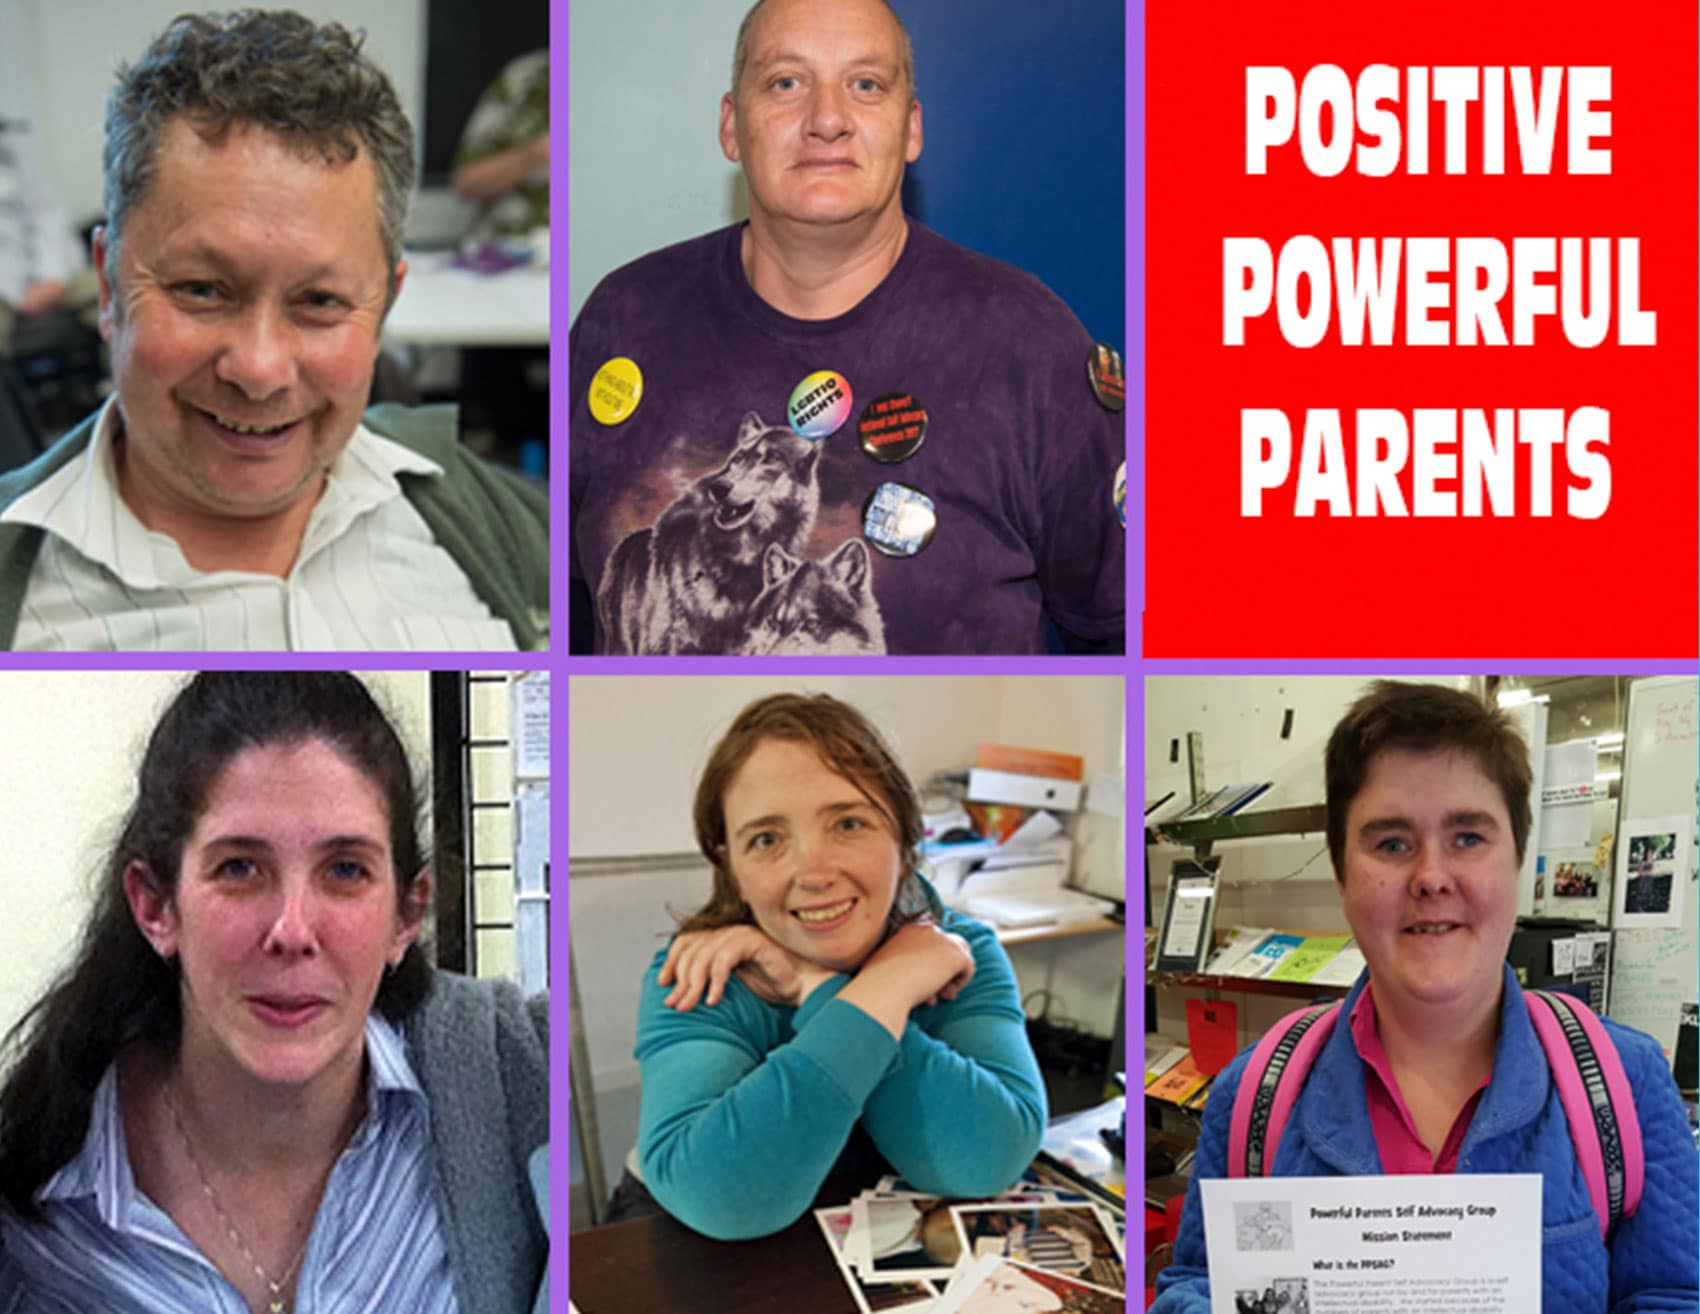 Picture of Powerful Positive Parents committee members